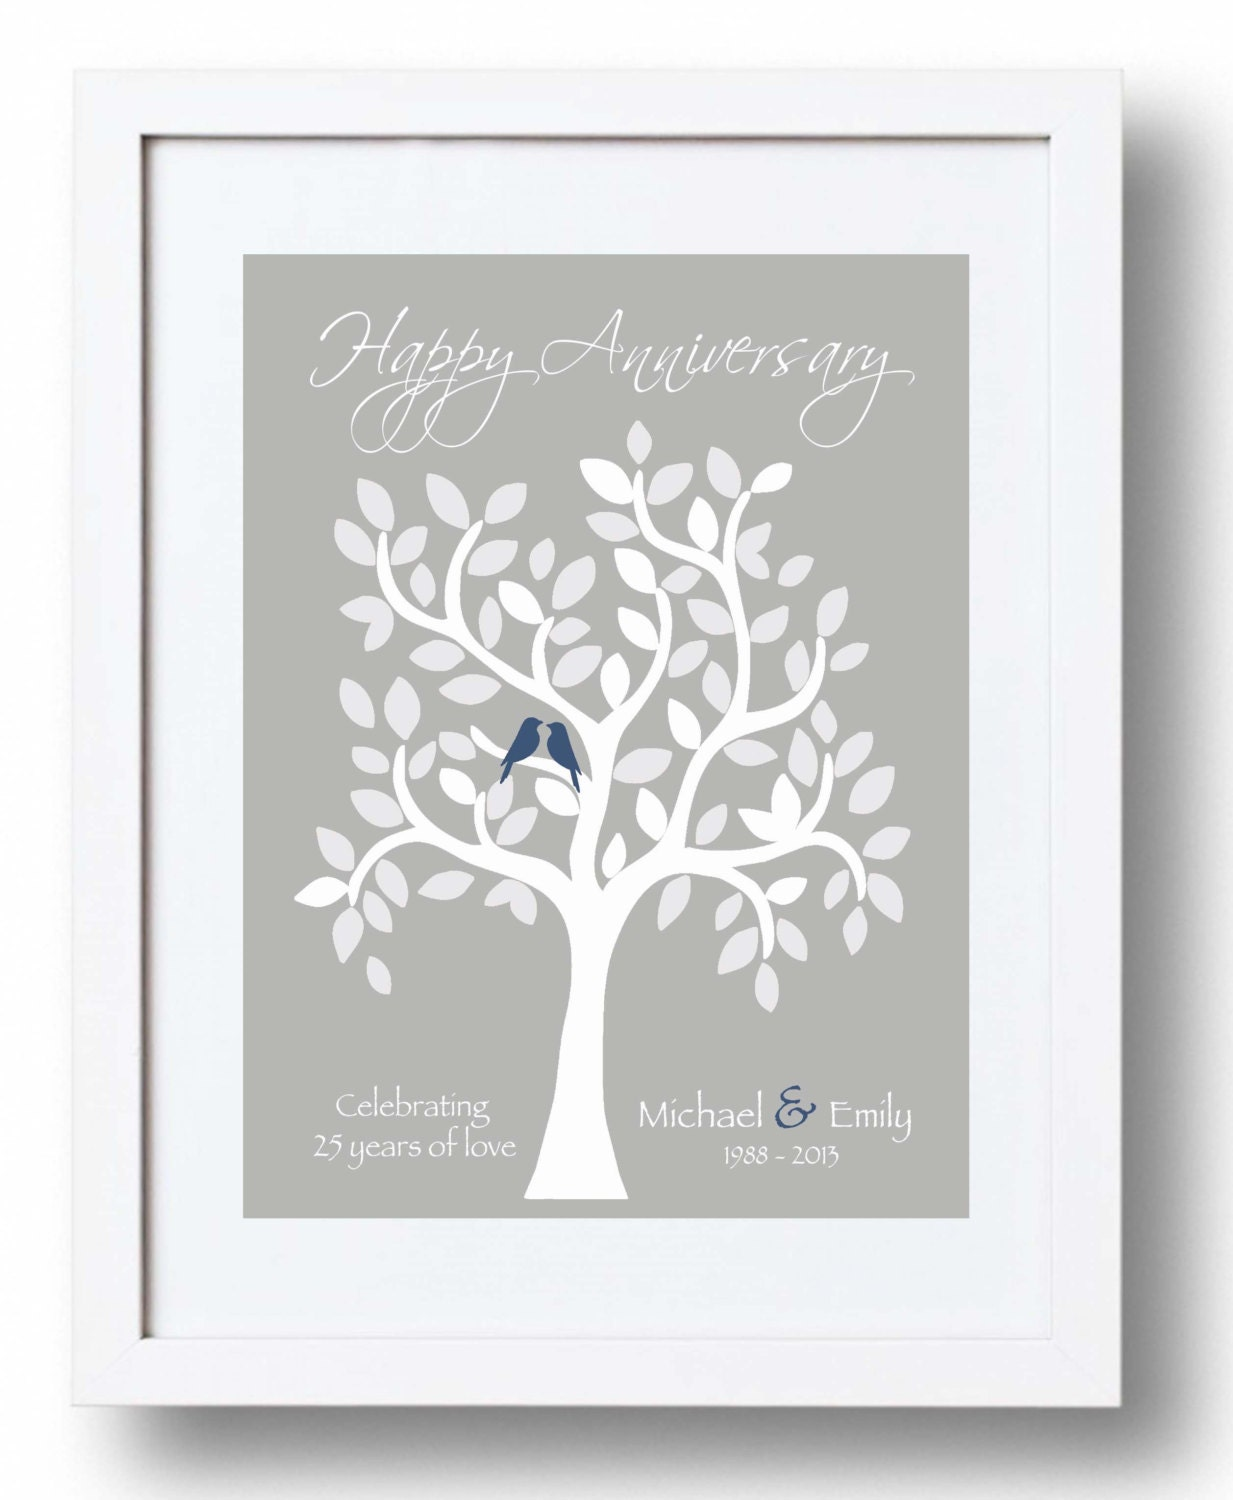 Silver Wedding Anniversary Gift Ideas For Parents: 25th Anniversary Gift For Parents 25th Silver Anniversary